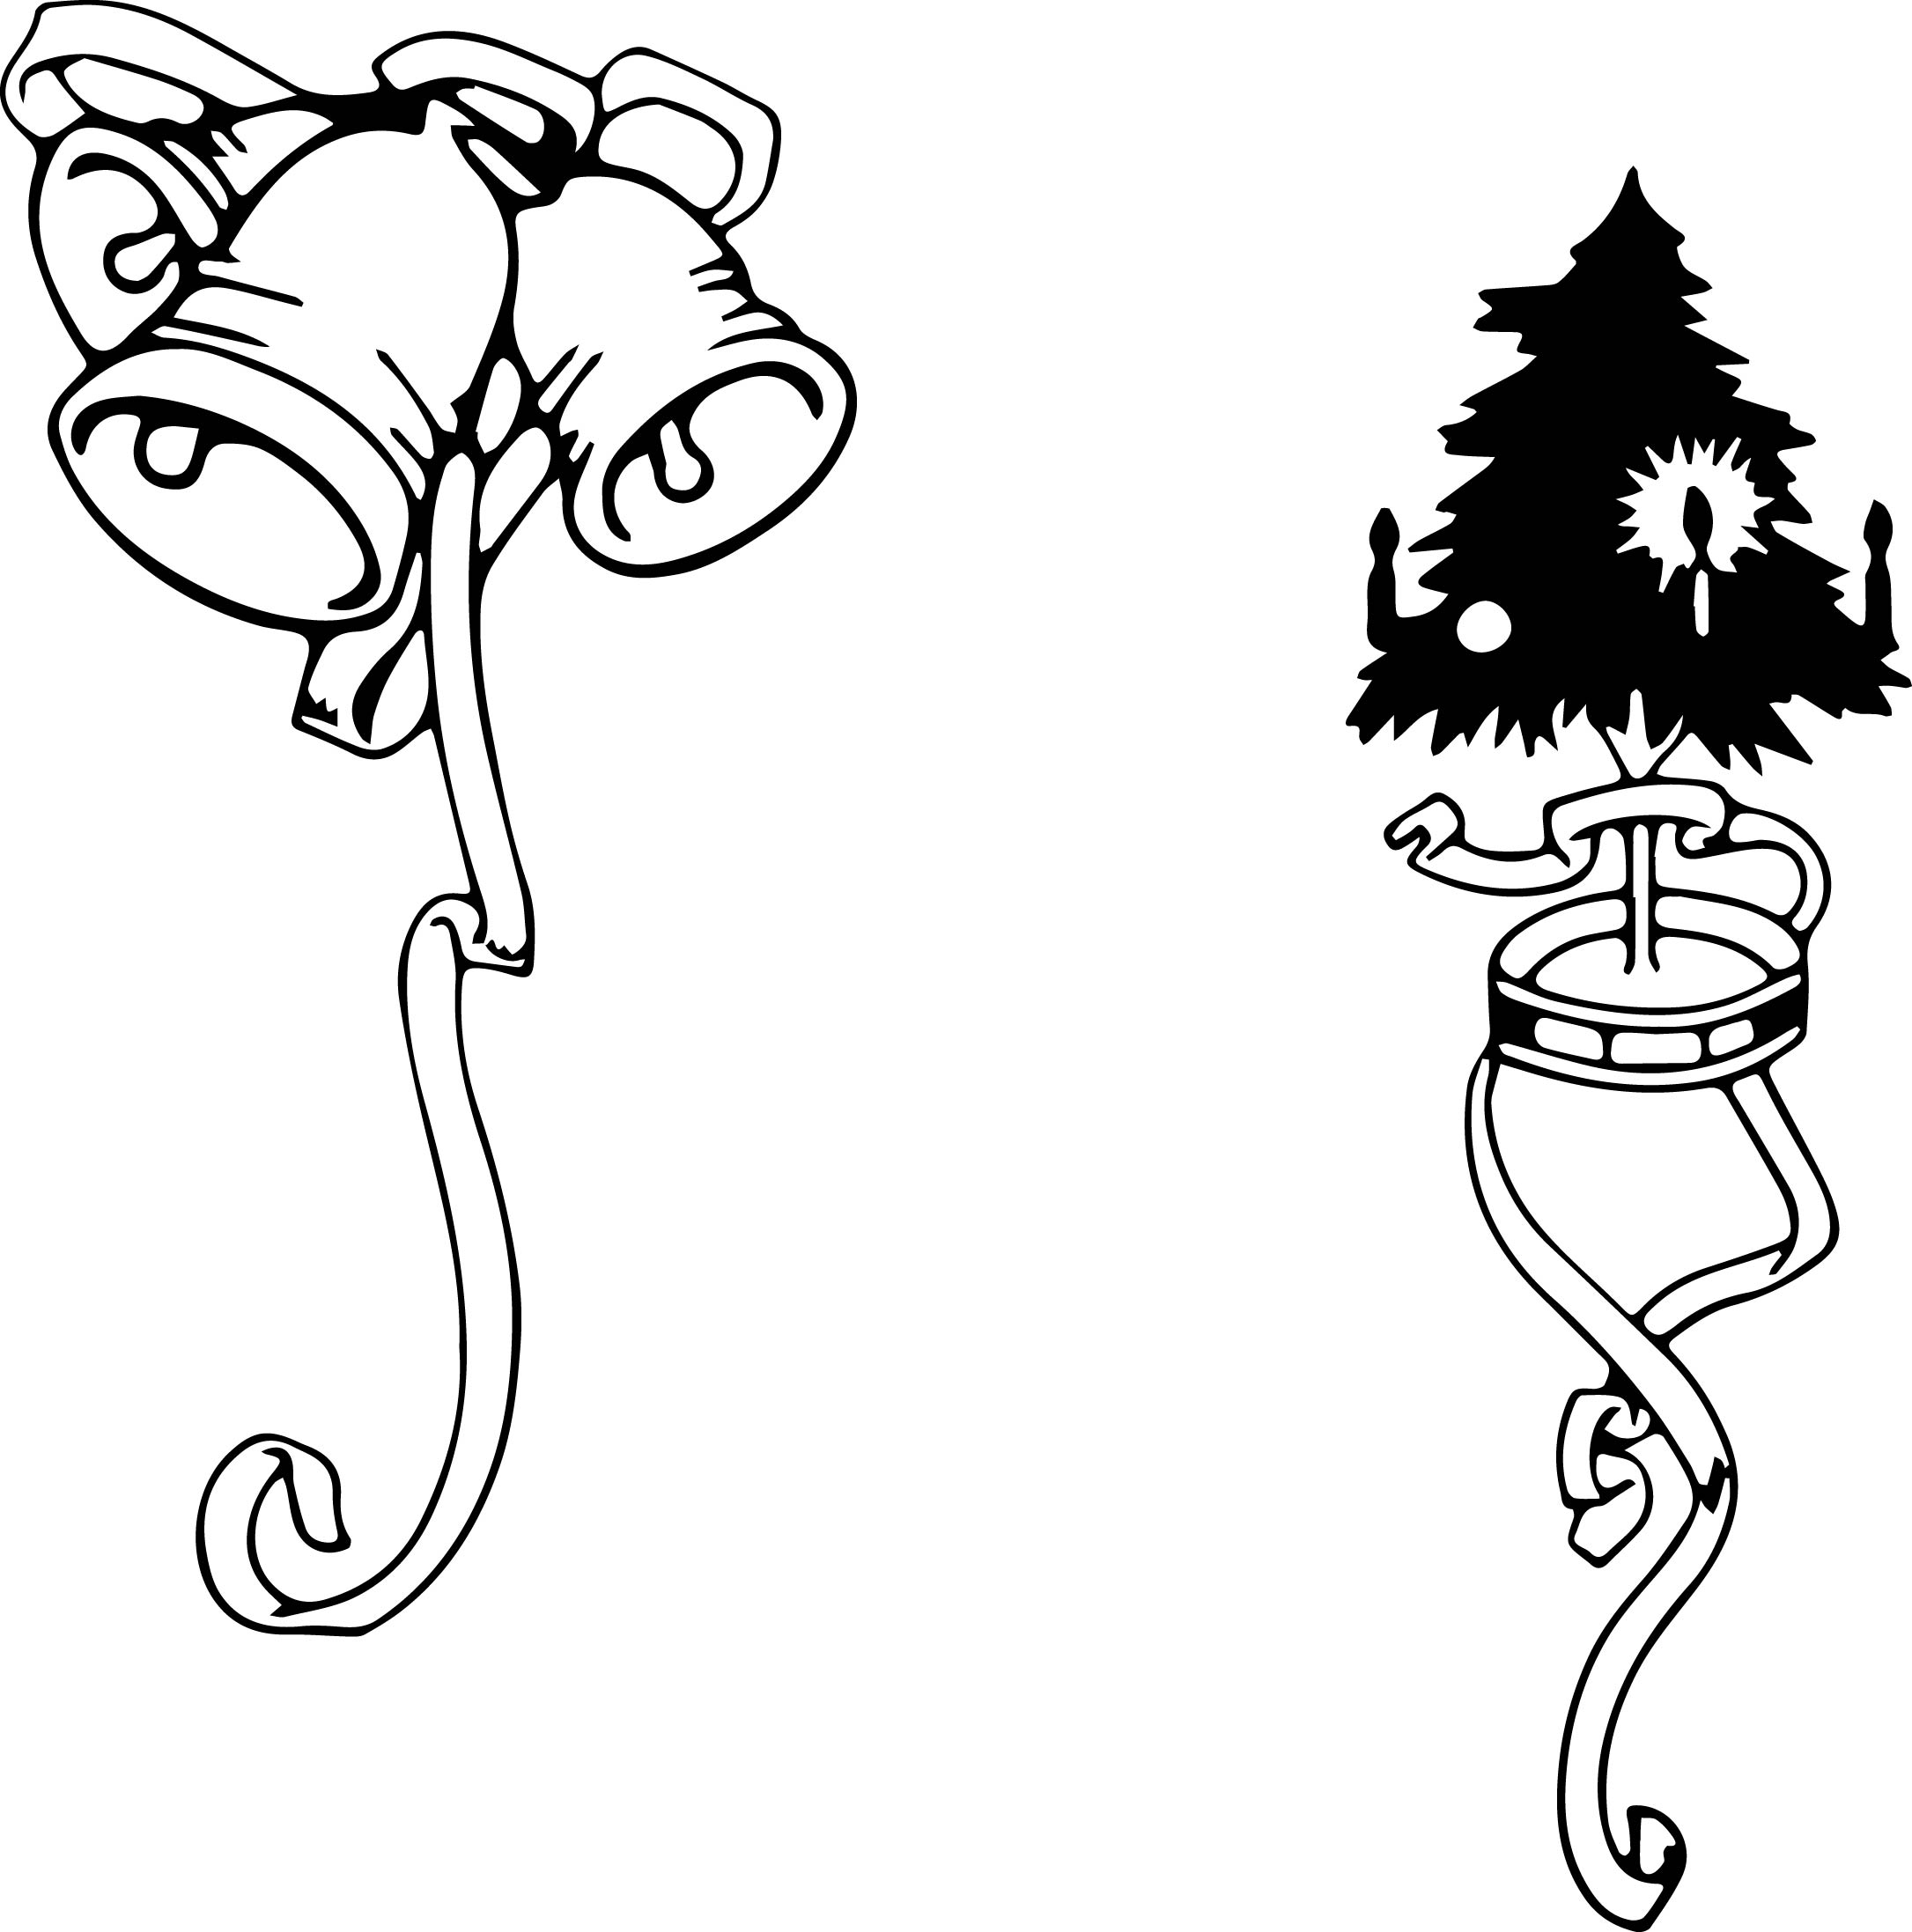 Clip Art Ornament Black And White Christmas ornament clipart